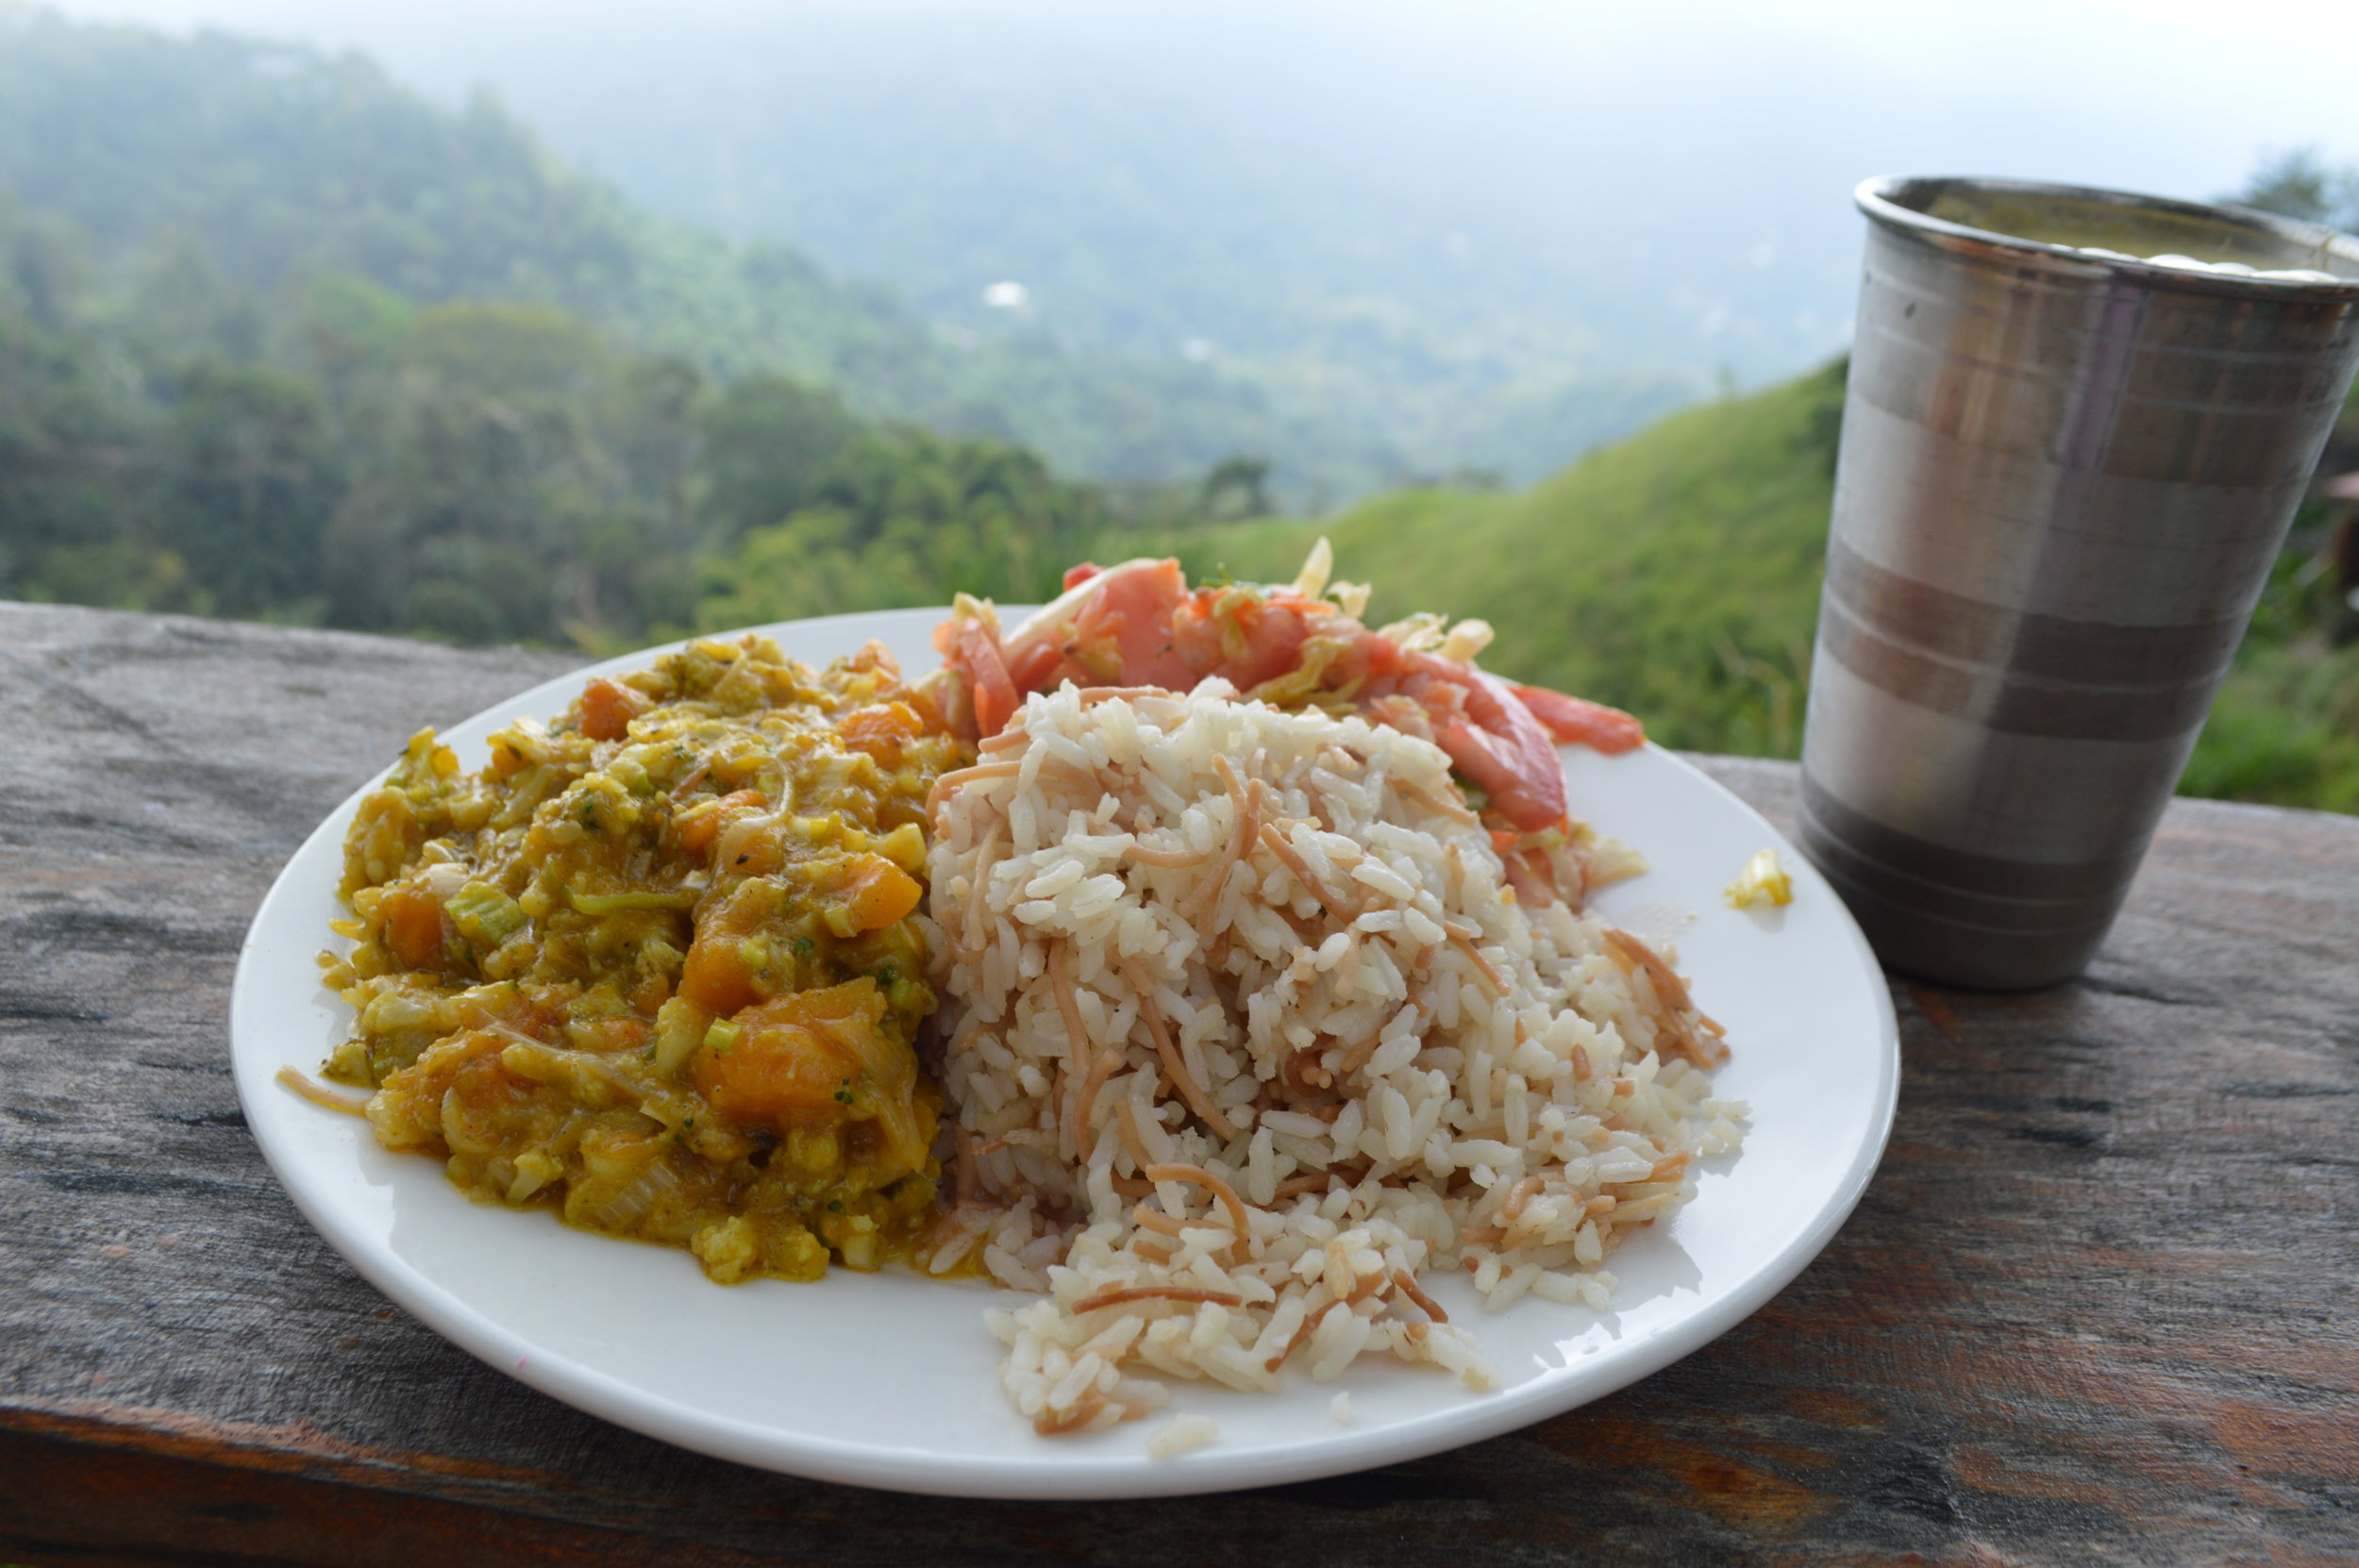 Meal of the Day: Curried vegetables and avocado tomato salad with rice